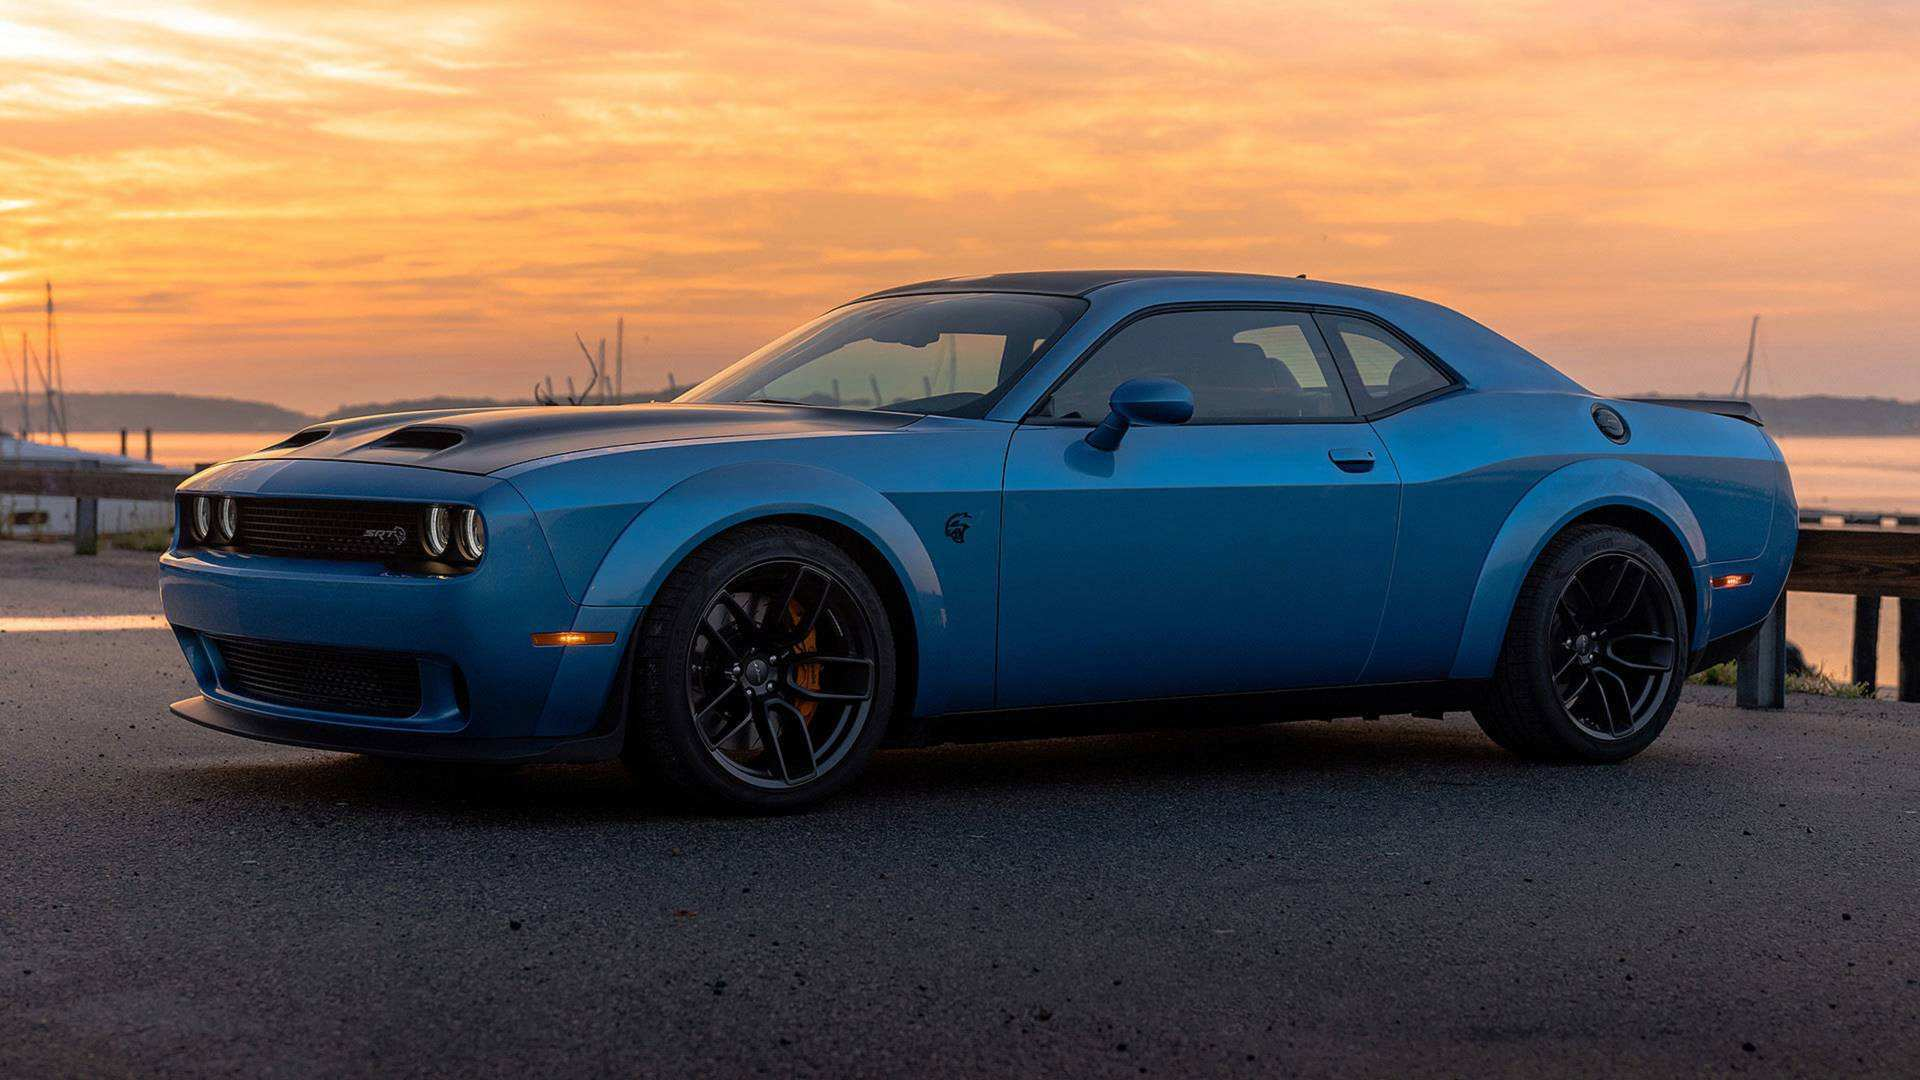 88 Gallery of 2019 Dodge Hellcat Photos for 2019 Dodge Hellcat